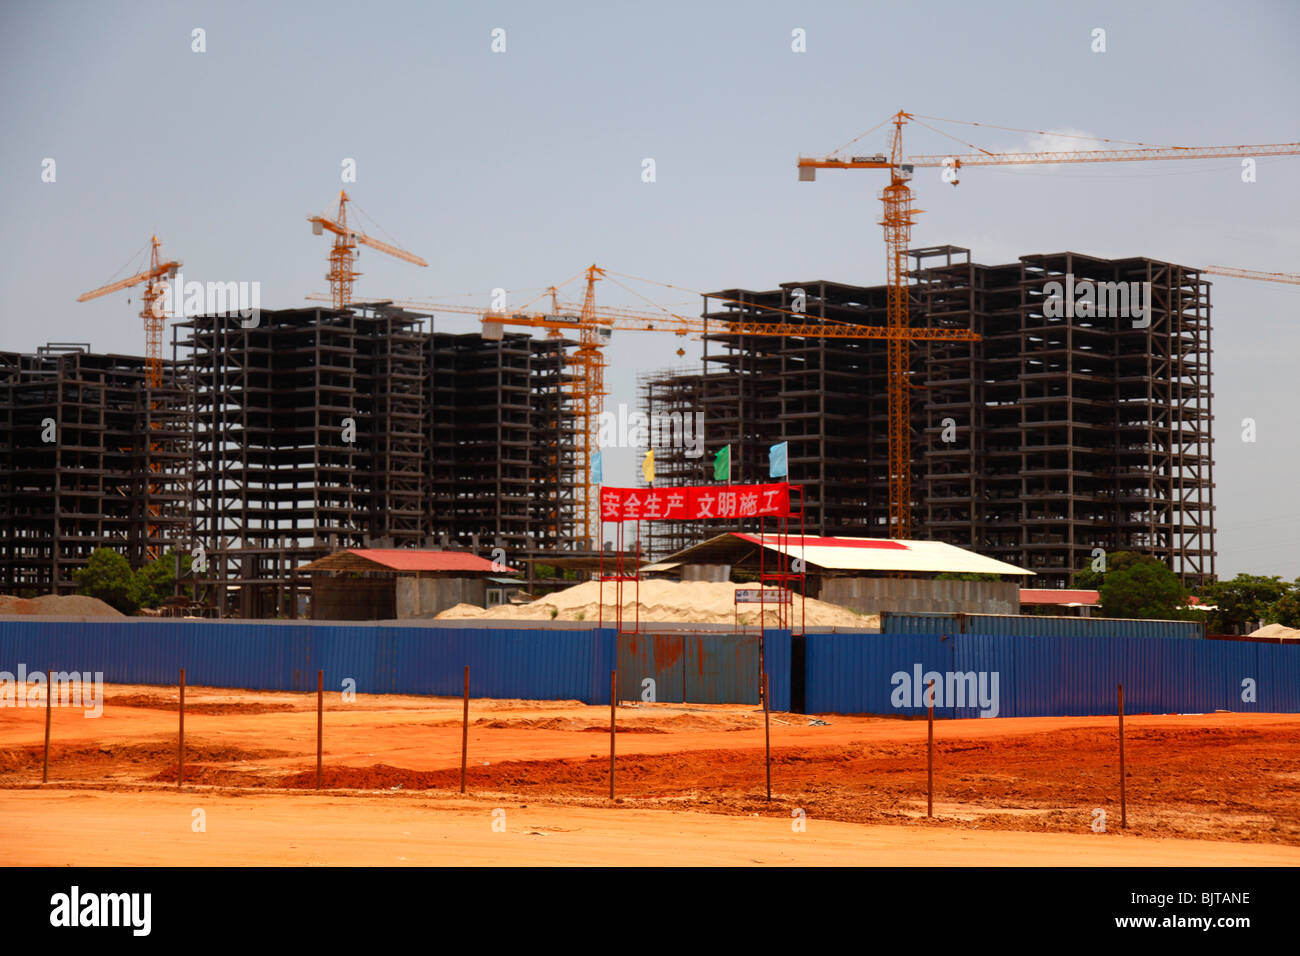 The Chinese Invasion helping in constructing housing projects on the outskirts of Luanda. Angola. Africa. © - Stock Image